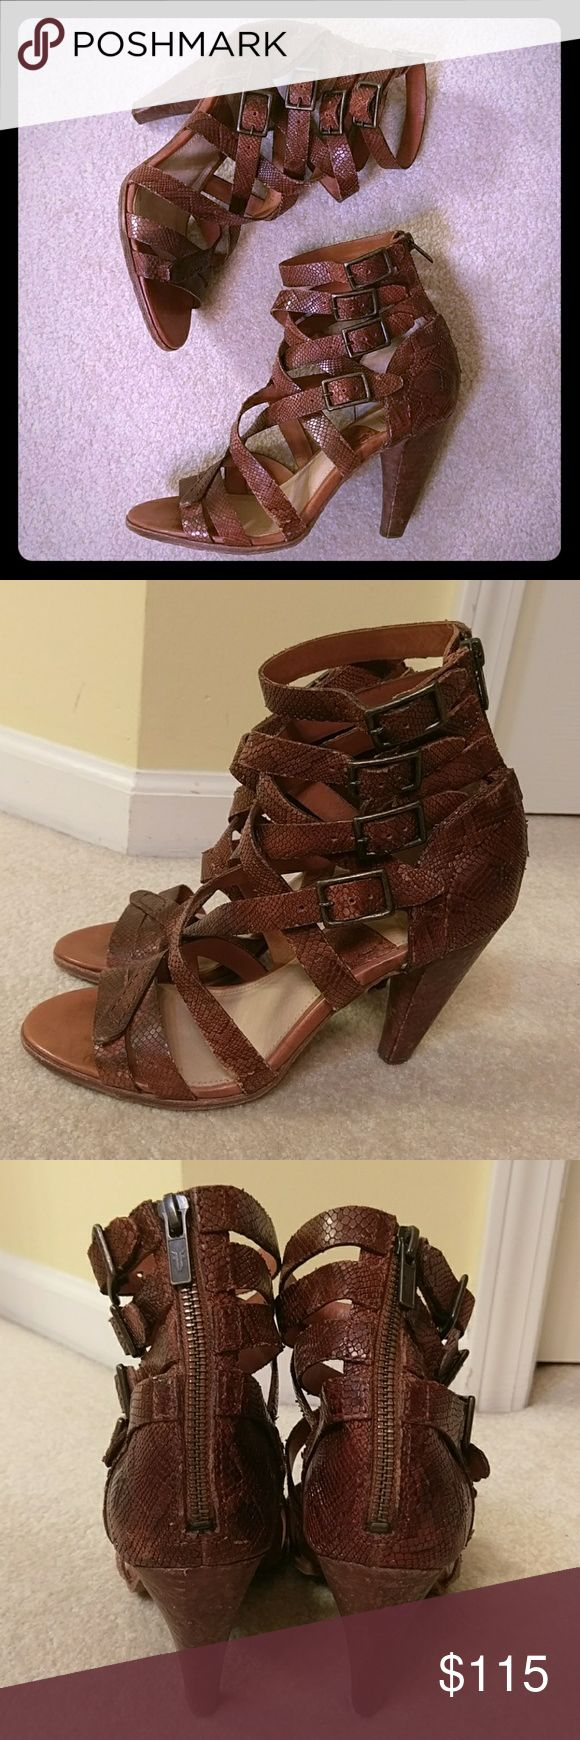 Frye like NEW sexy sandals Frye Mika Strappy Embossed Leather Cognac. Made to look destressed including the heels. Very sexy, and incredibly comfortable. Worn once. 4 inch heels. Zipper for easy access. Buckles adjust to fit most ankles. Sorry, no trades. Frye Shoes Sandals